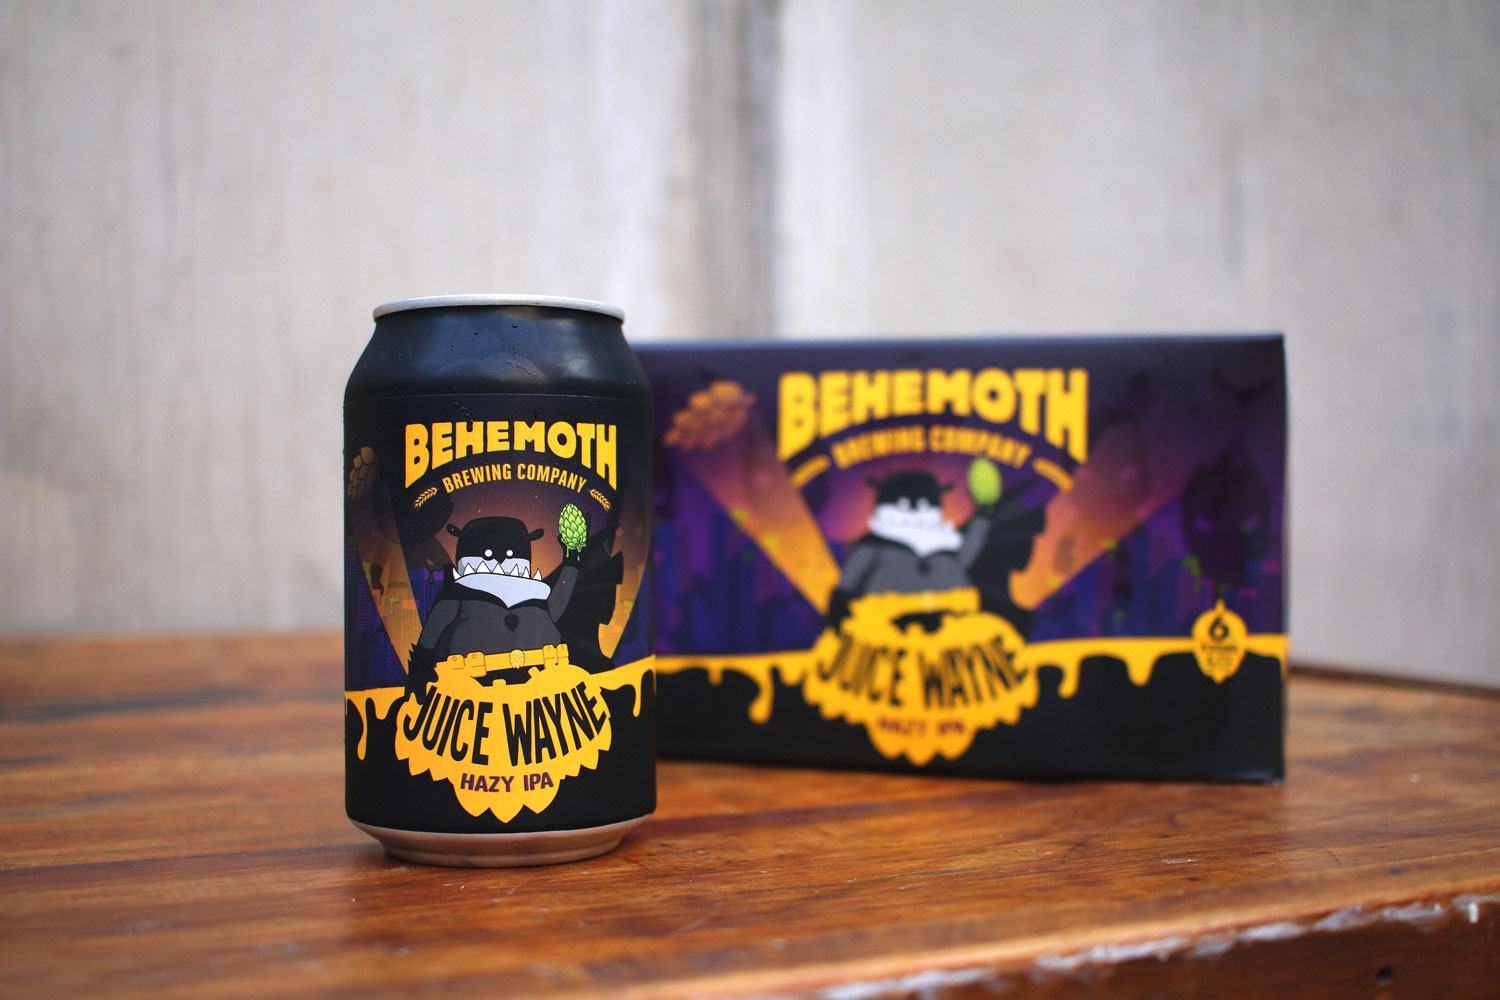 Behemoth 'Juice Wayne' 6 Pack